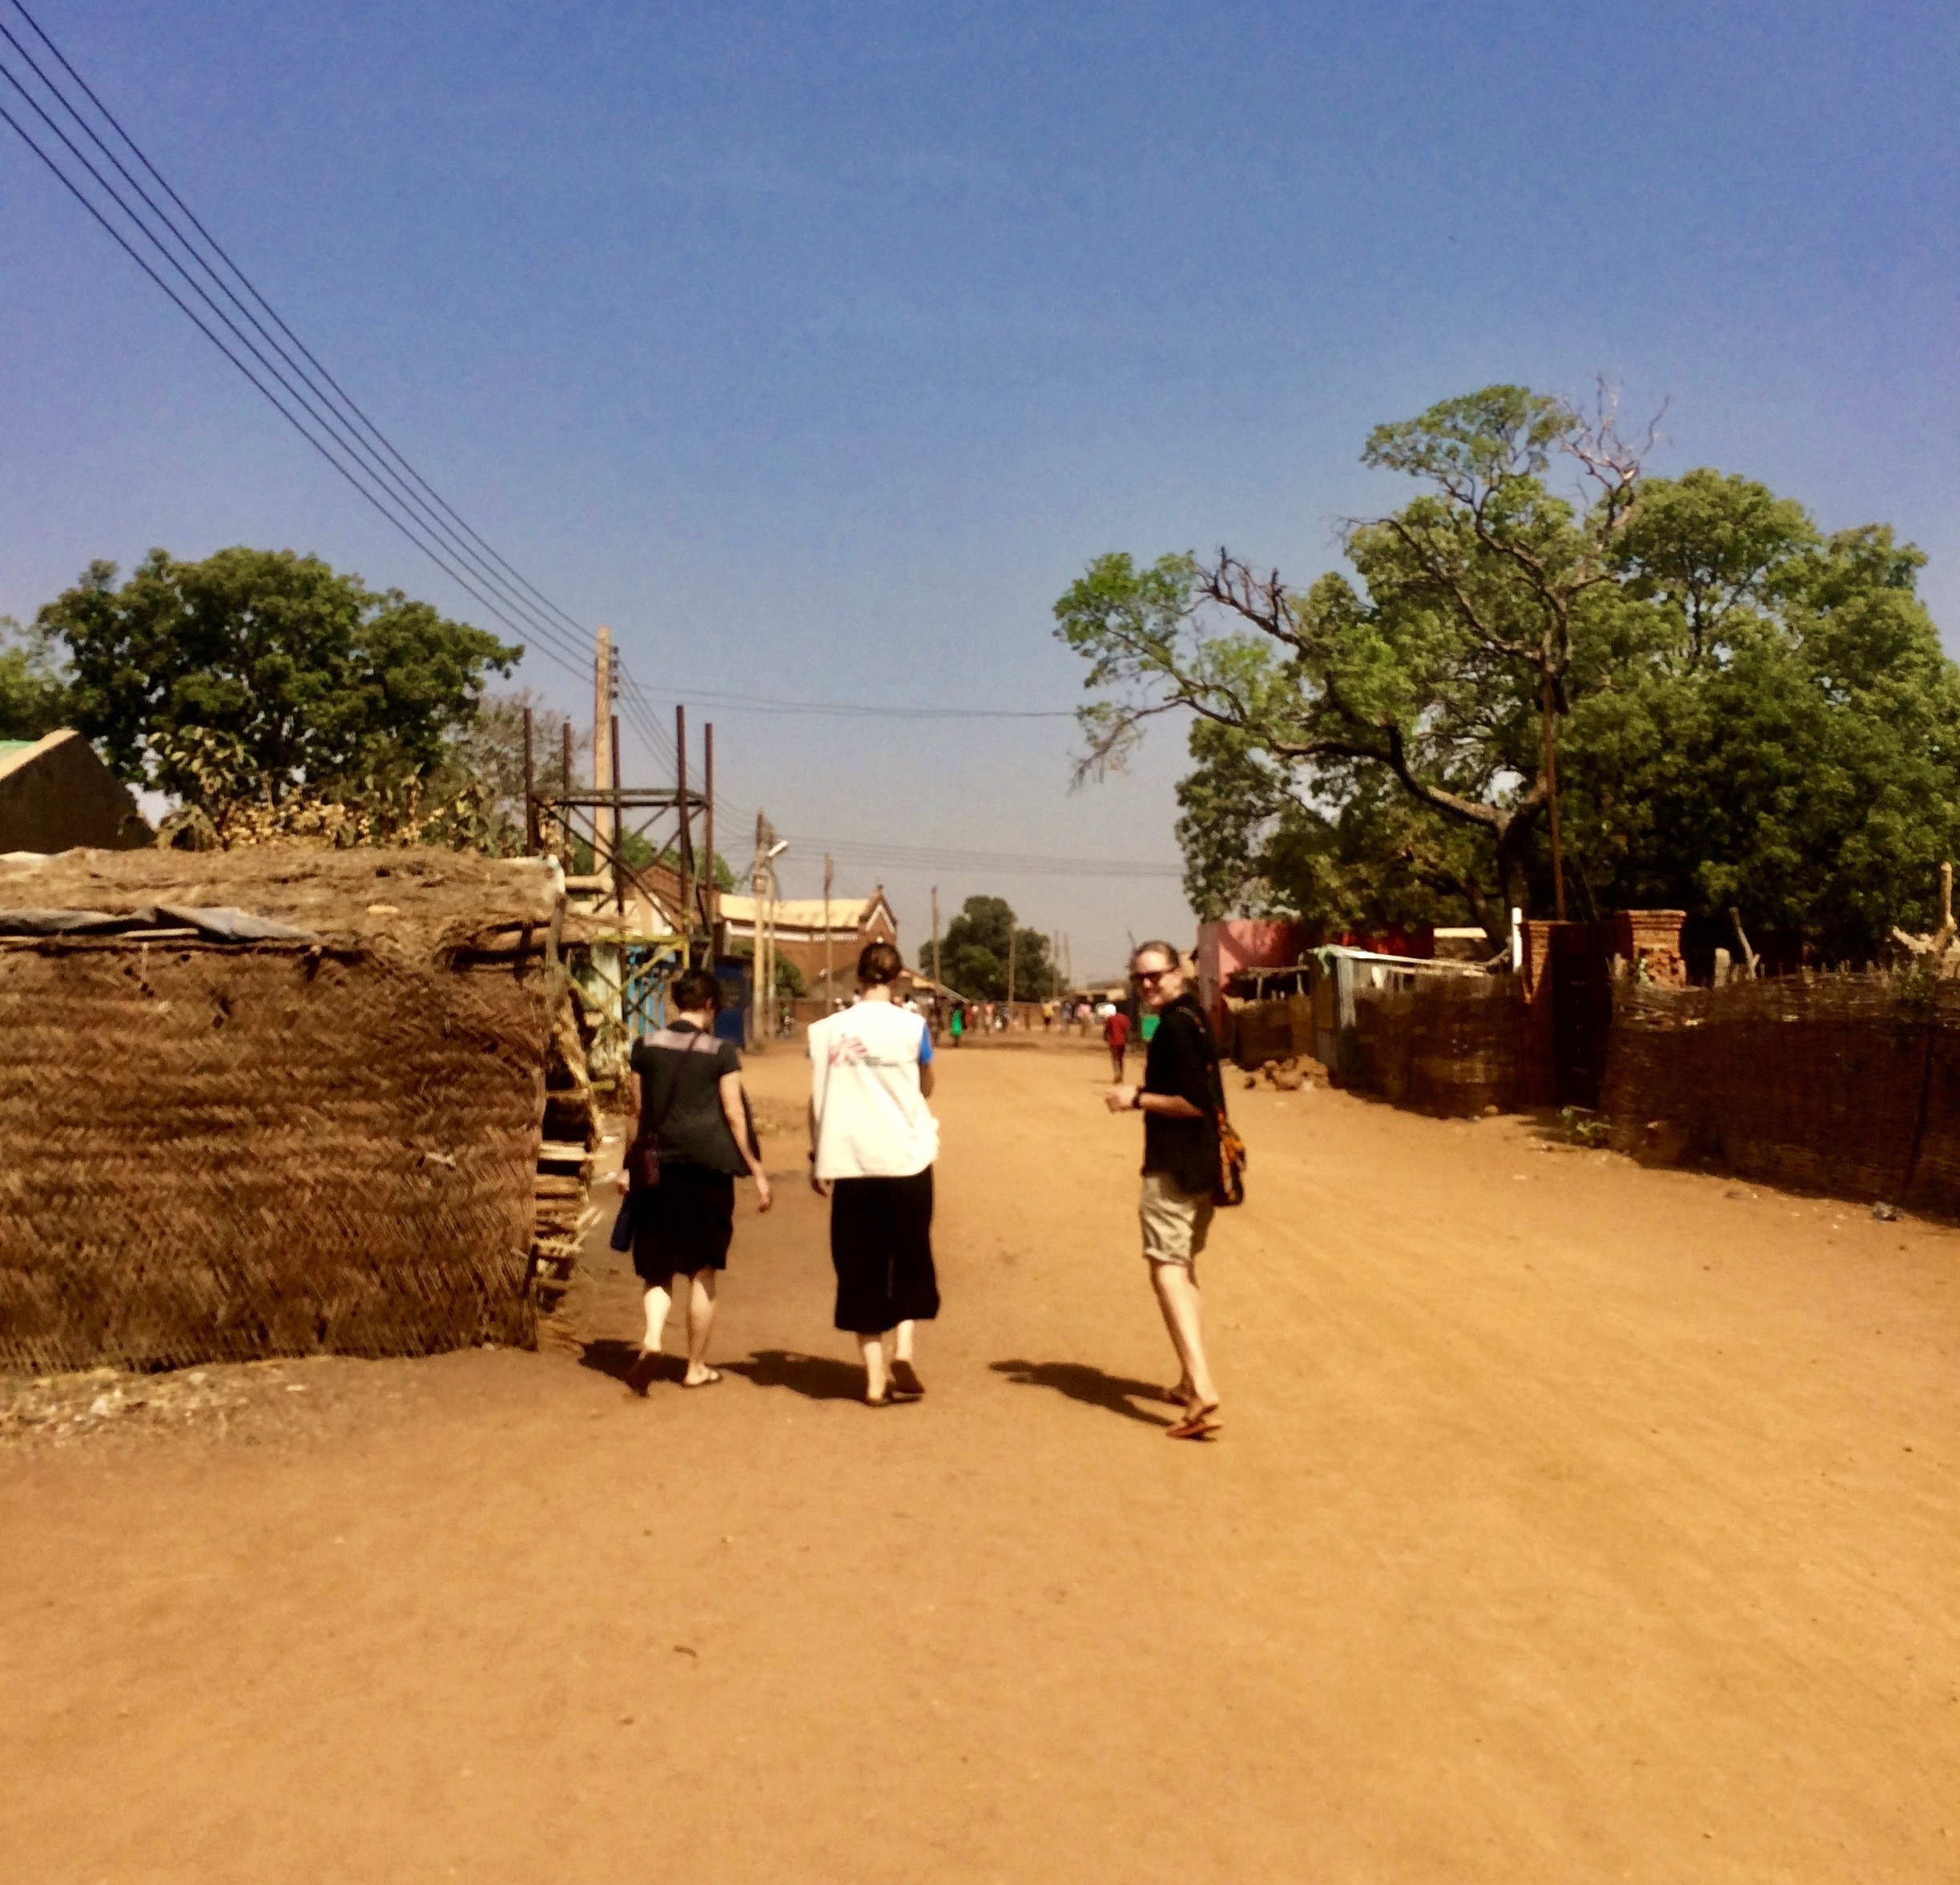 Three people walking in Aweil town